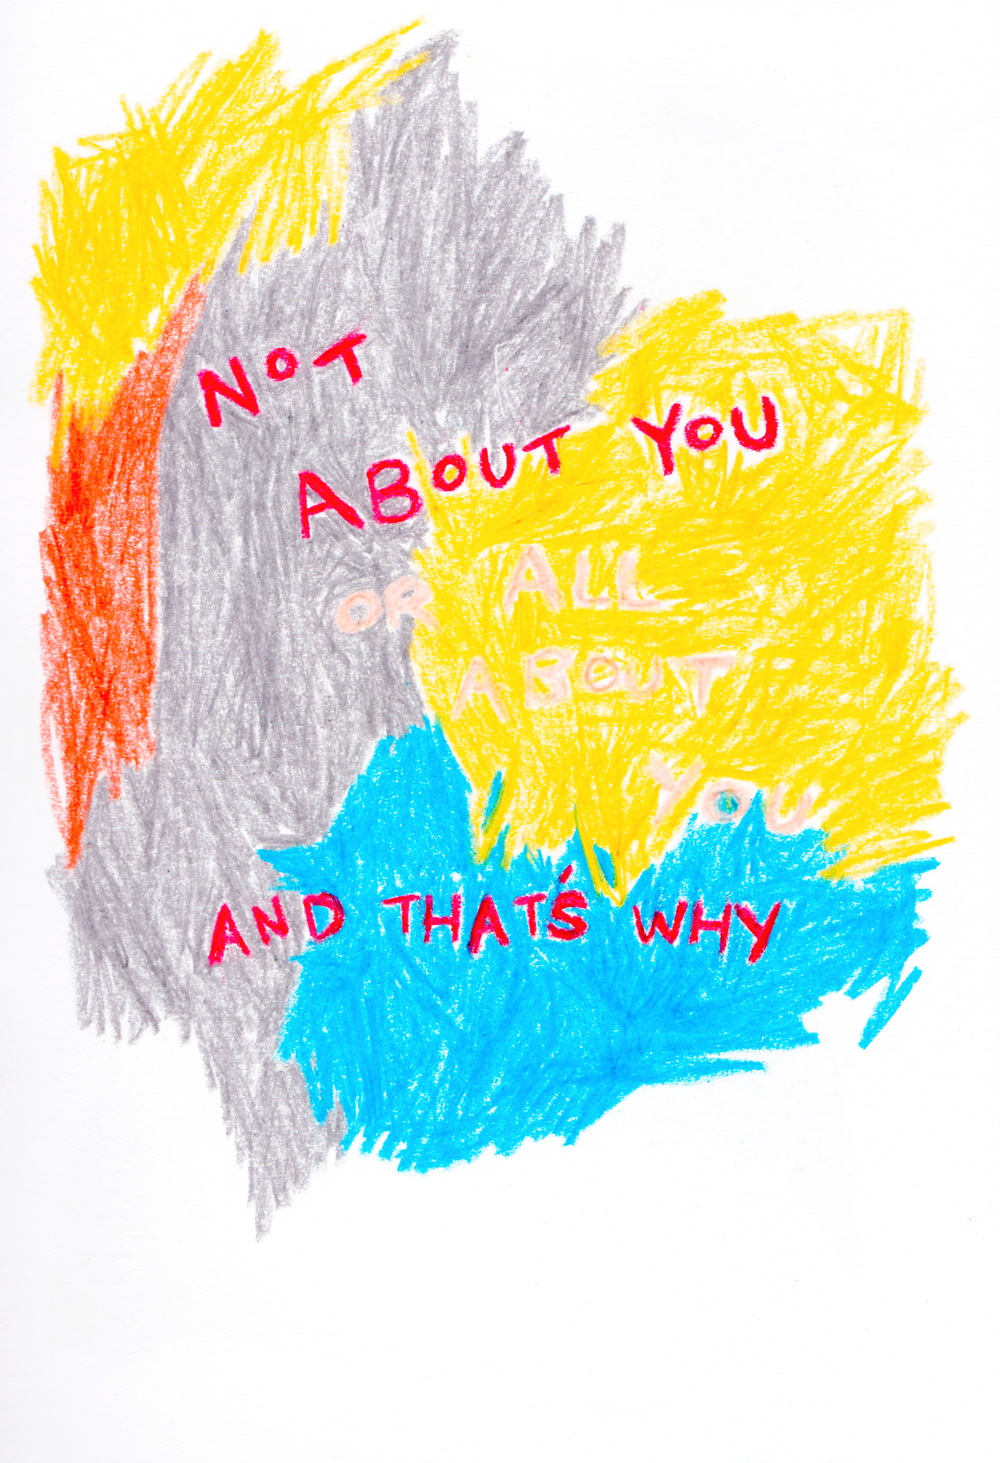 Not About You. Crayon drawing on paper.